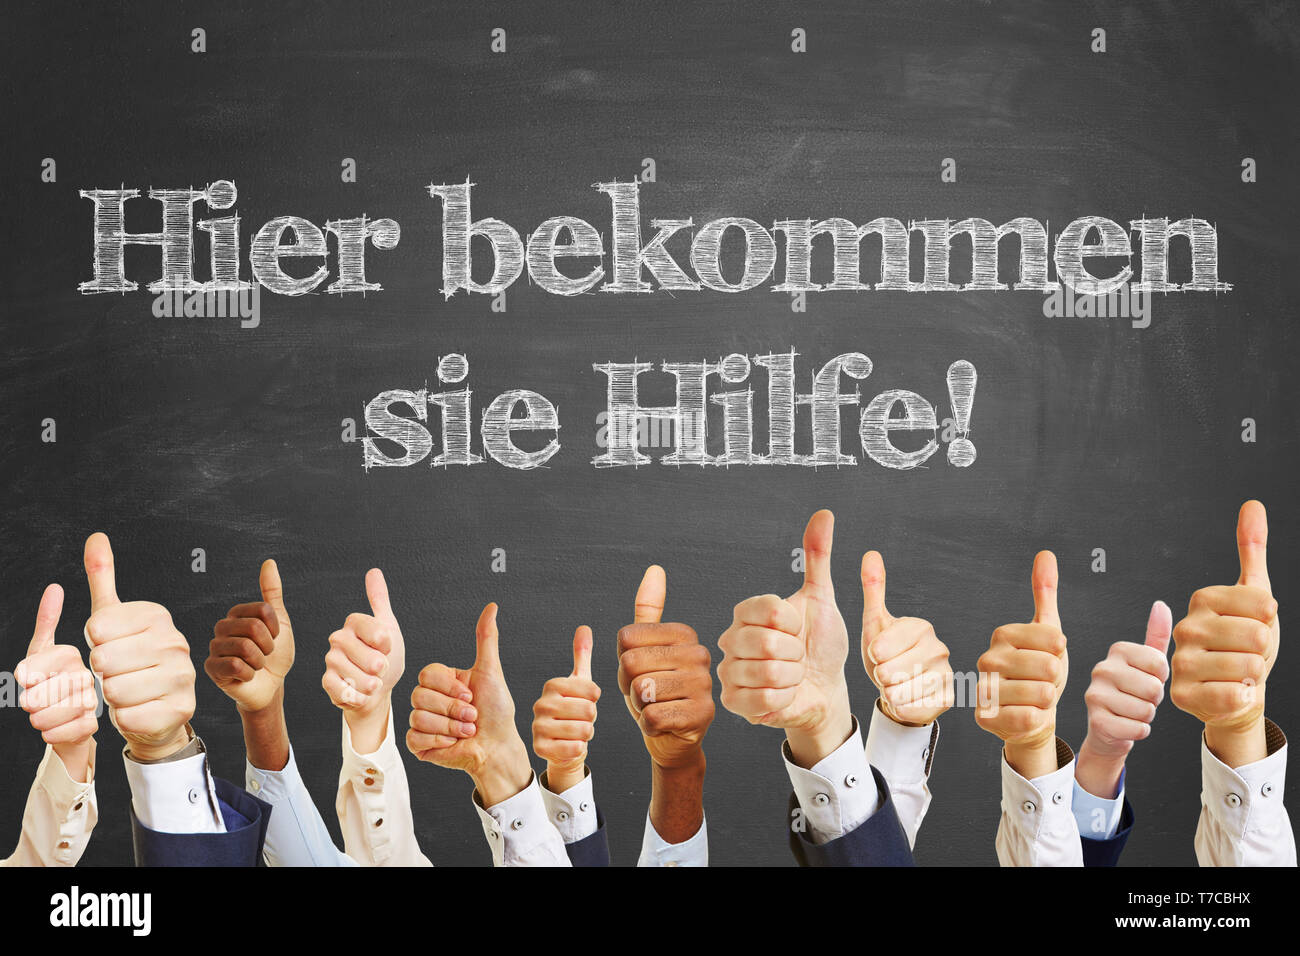 Blackboard with German slogan 'Hier bekommen sie Hilfe!' (Here you will get help!) - Stock Image